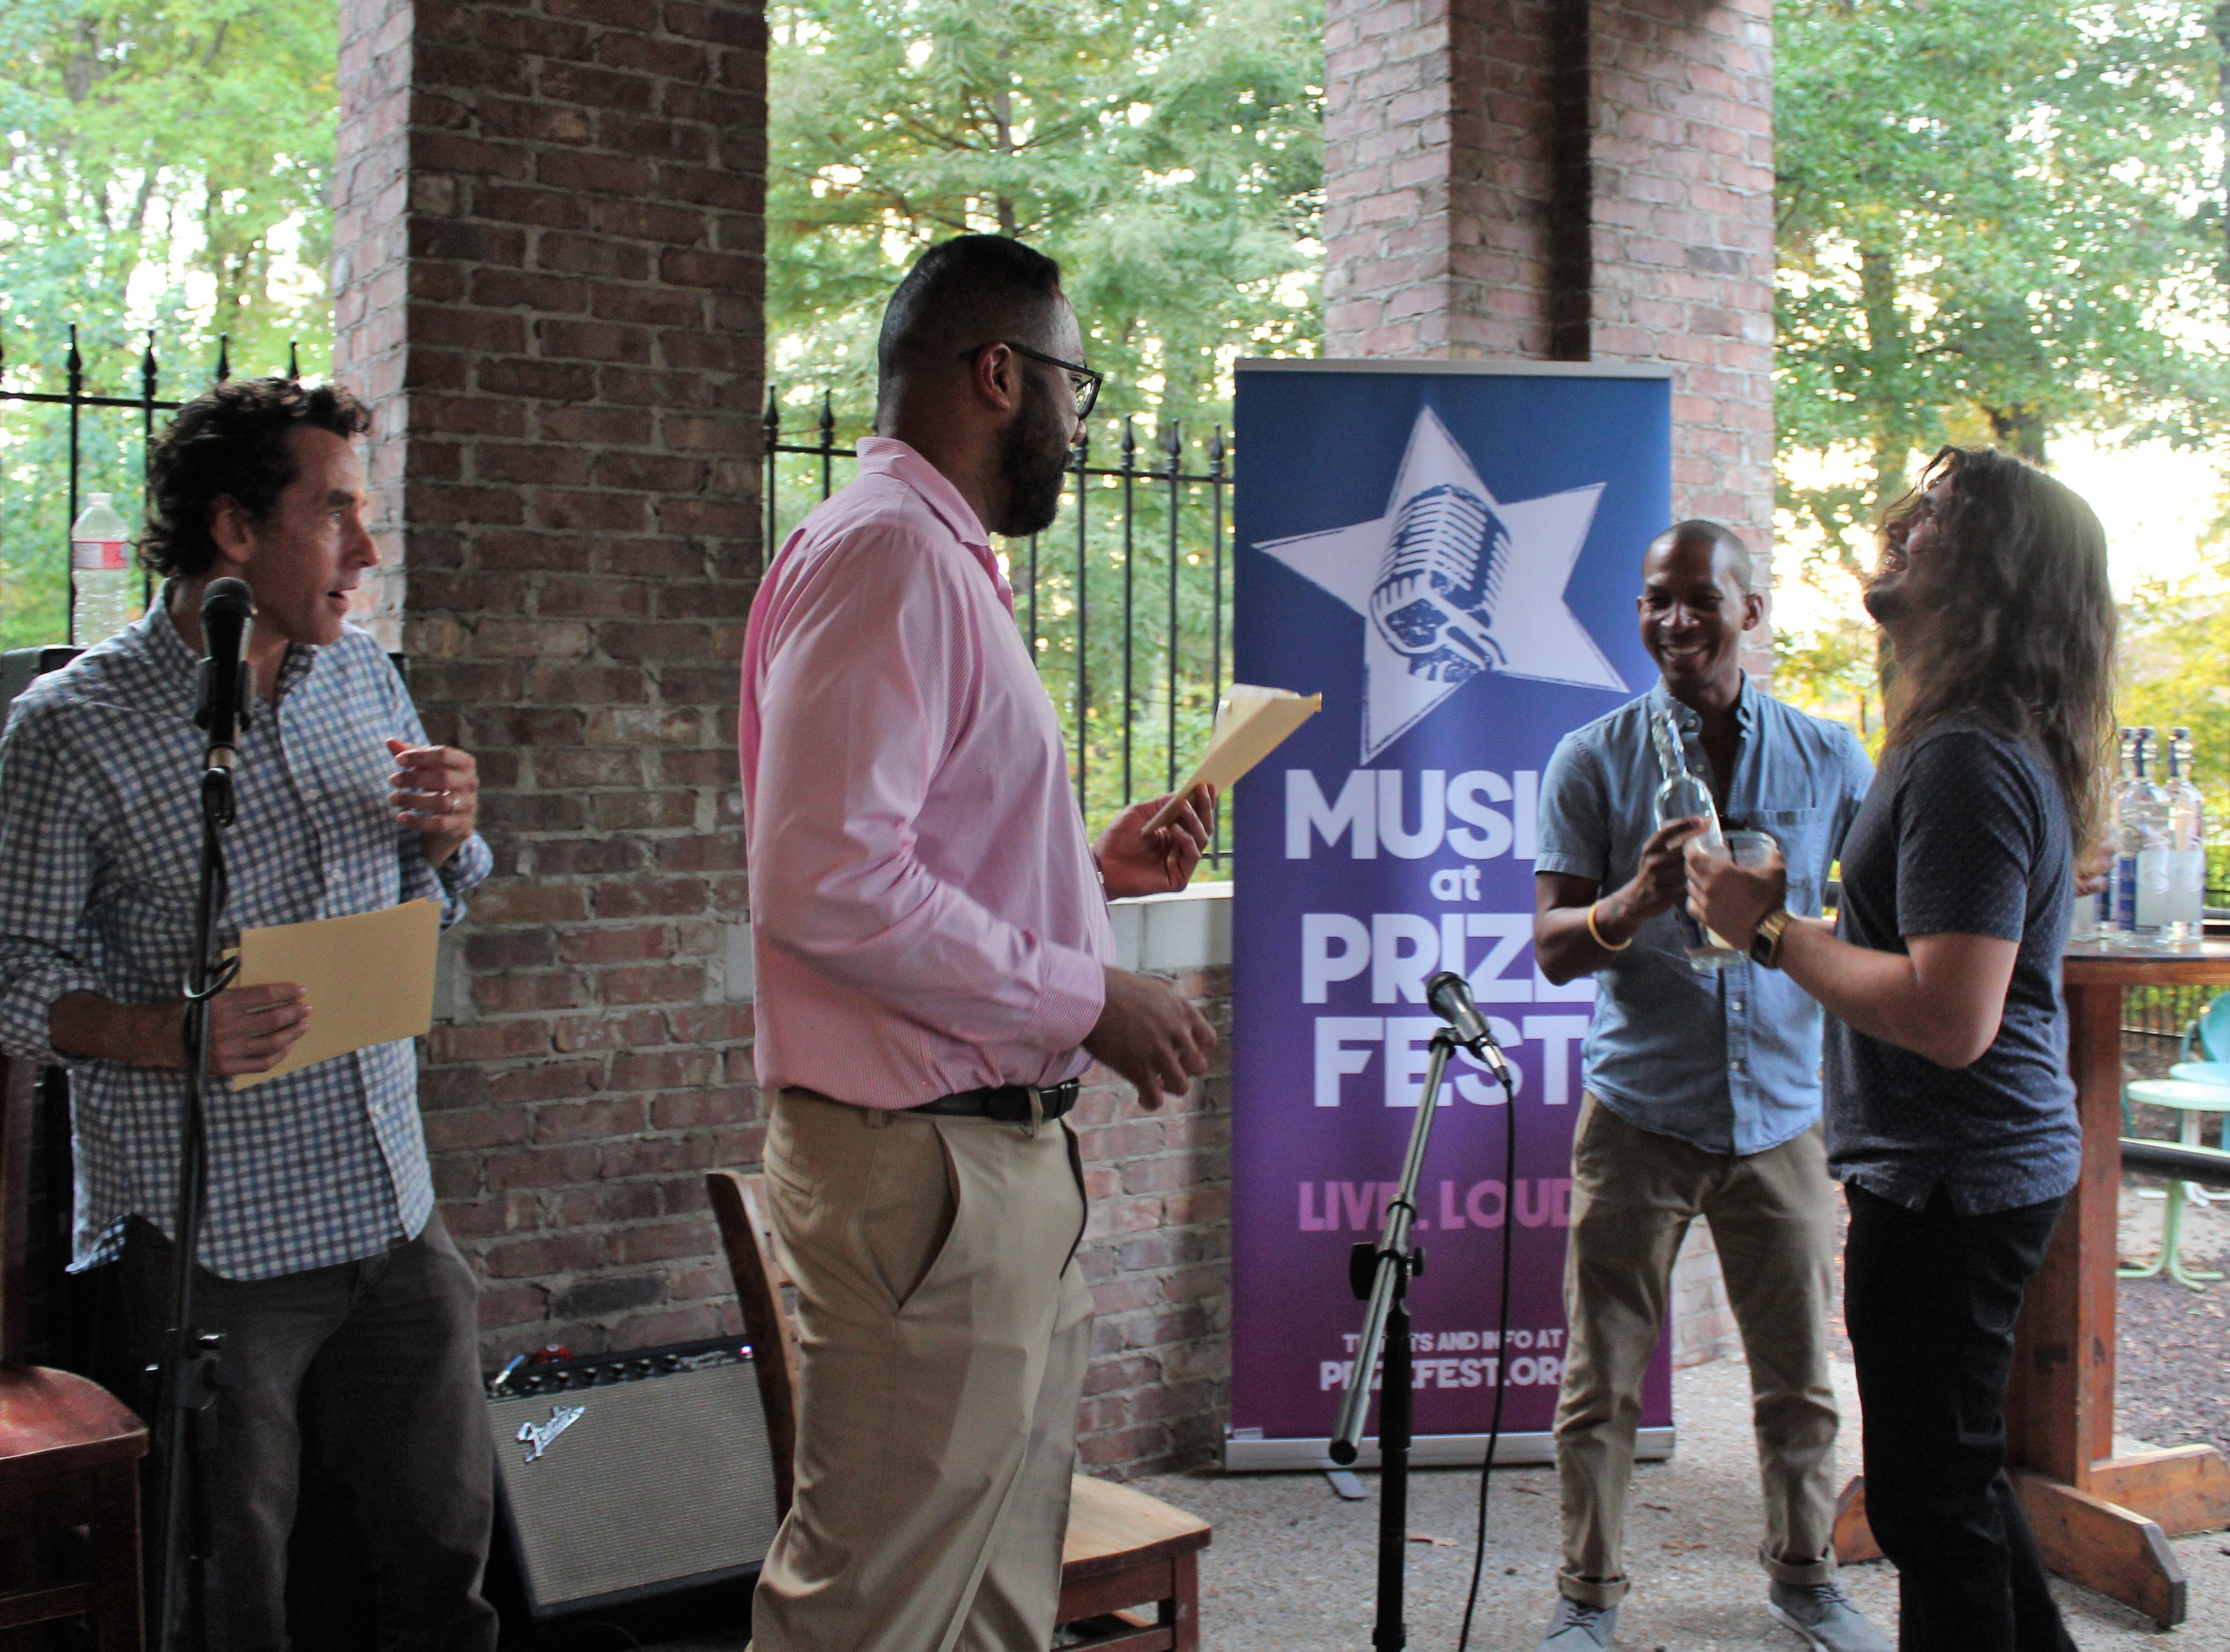 Good Spirits will advance to play Louisiana Music Prize Discovery Showcase to compete for $2,500, a trophy and to play the Music Prize main stage.